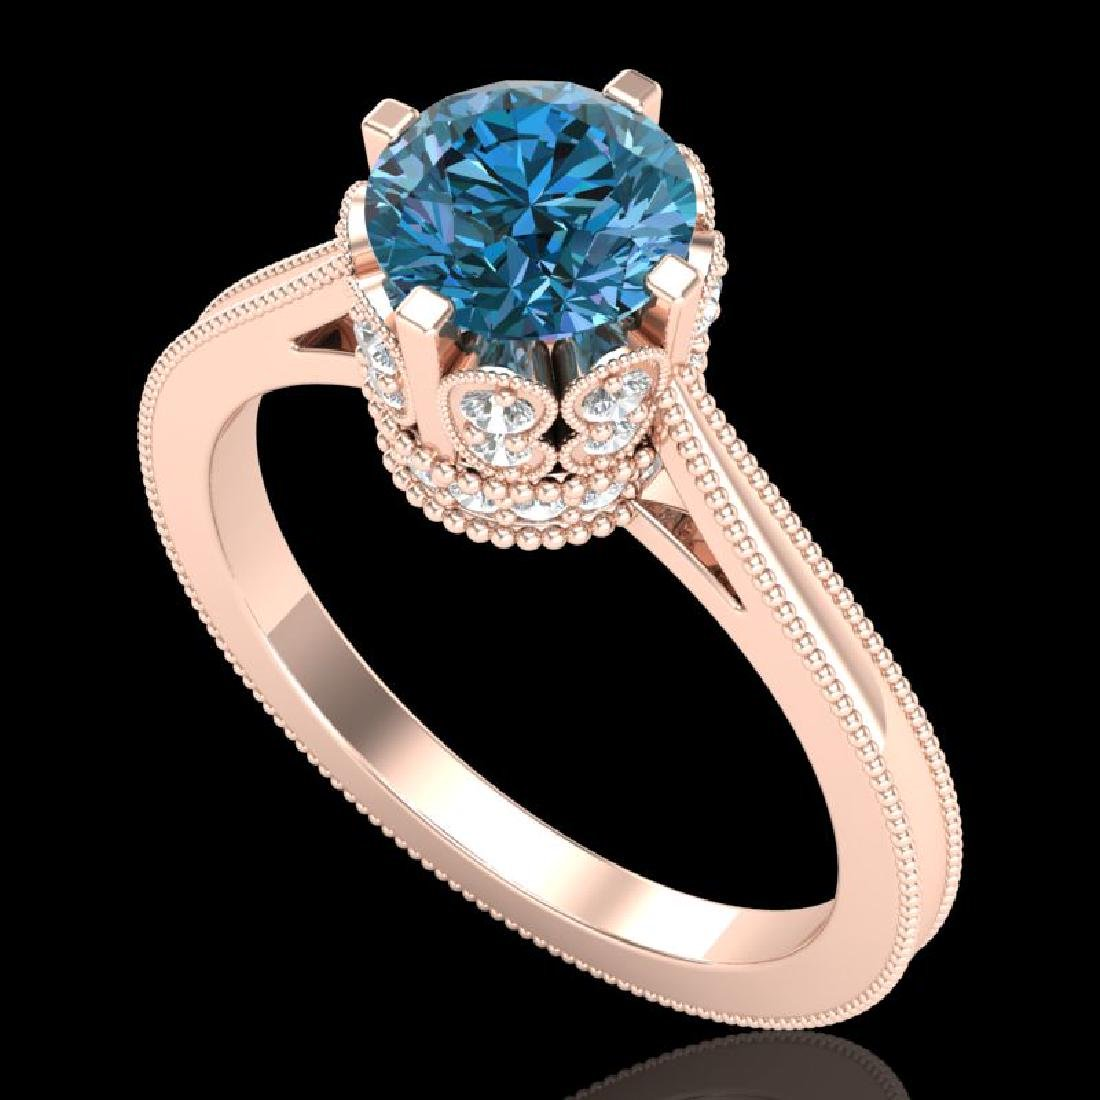 1.5 CTW Fancy Intense Blue Diamond Engagement Art Deco